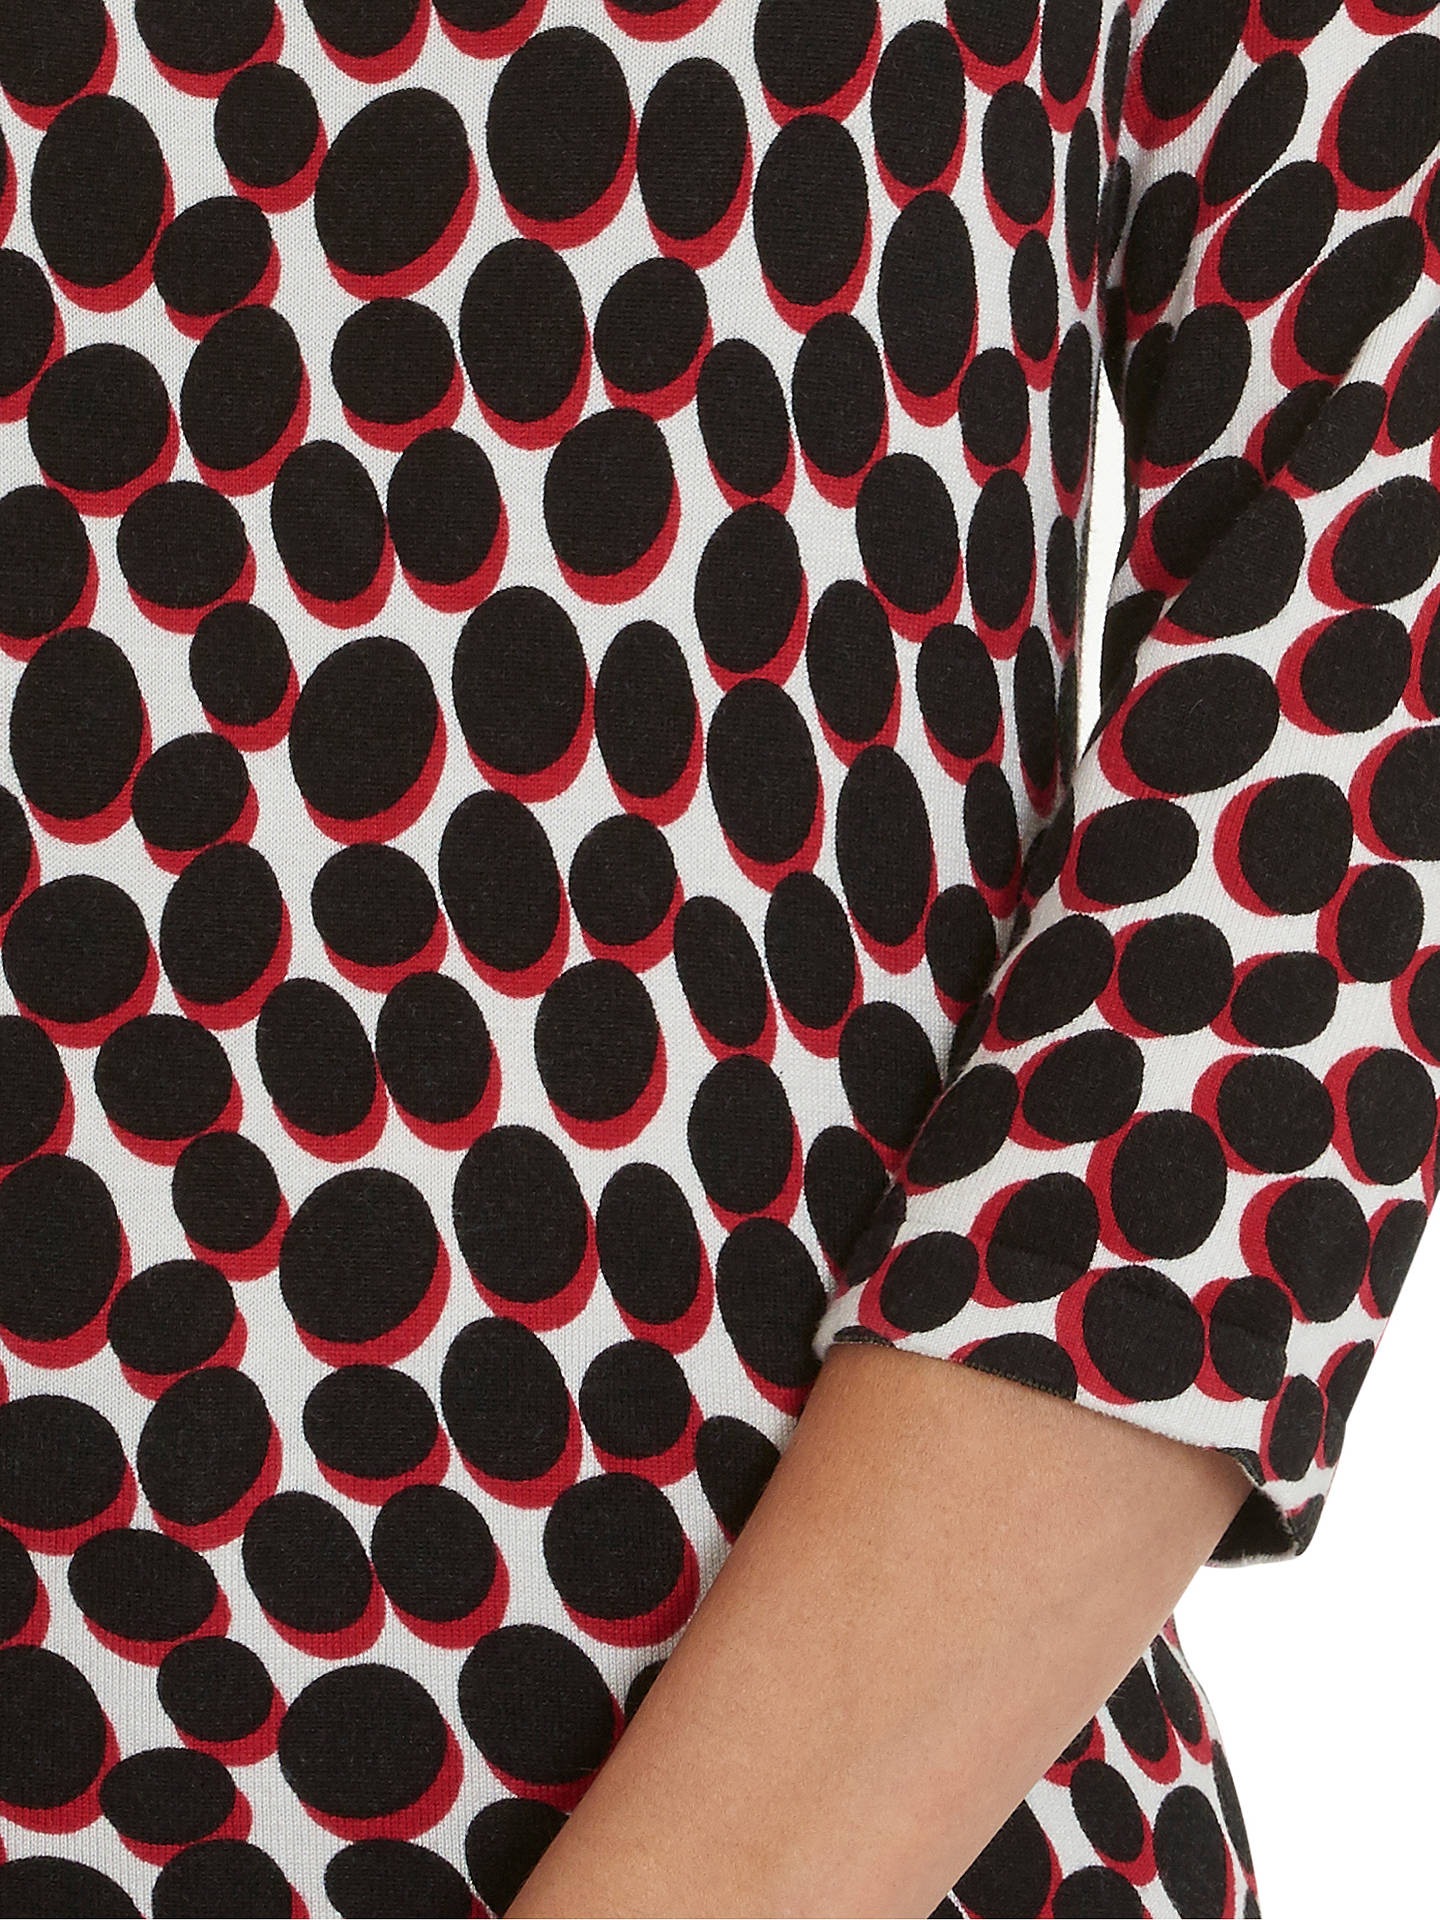 BuyBetty Barclay Dot Print Jumper, Black/Red, 8 Online at johnlewis.com